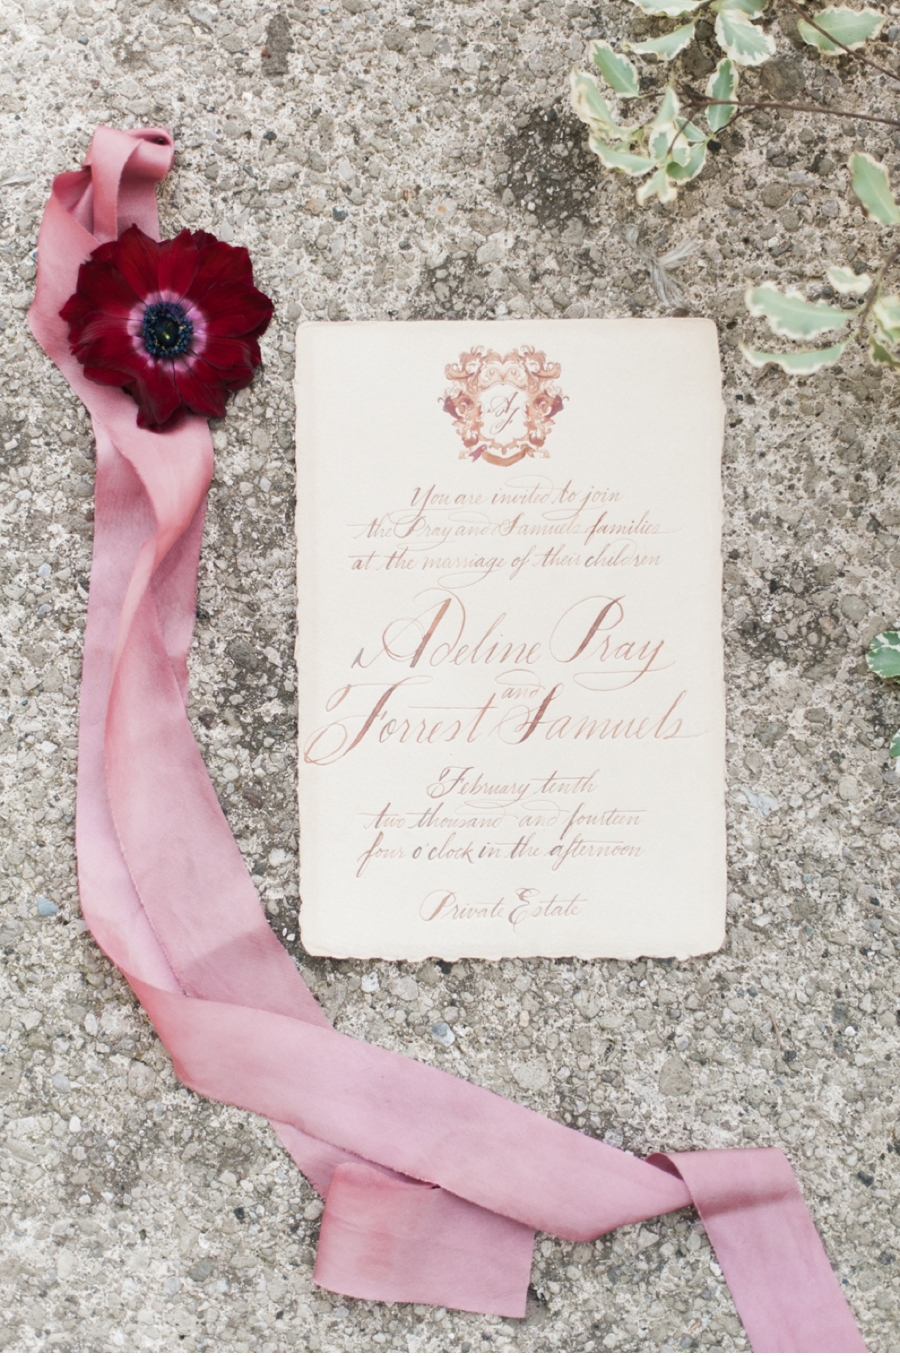 6. Old world Italian inspiration with calligraphy by  Julie Song Ink  and photography by  Vasia Photography  for the  Moda e Arte workshop  which can be seen  here  .